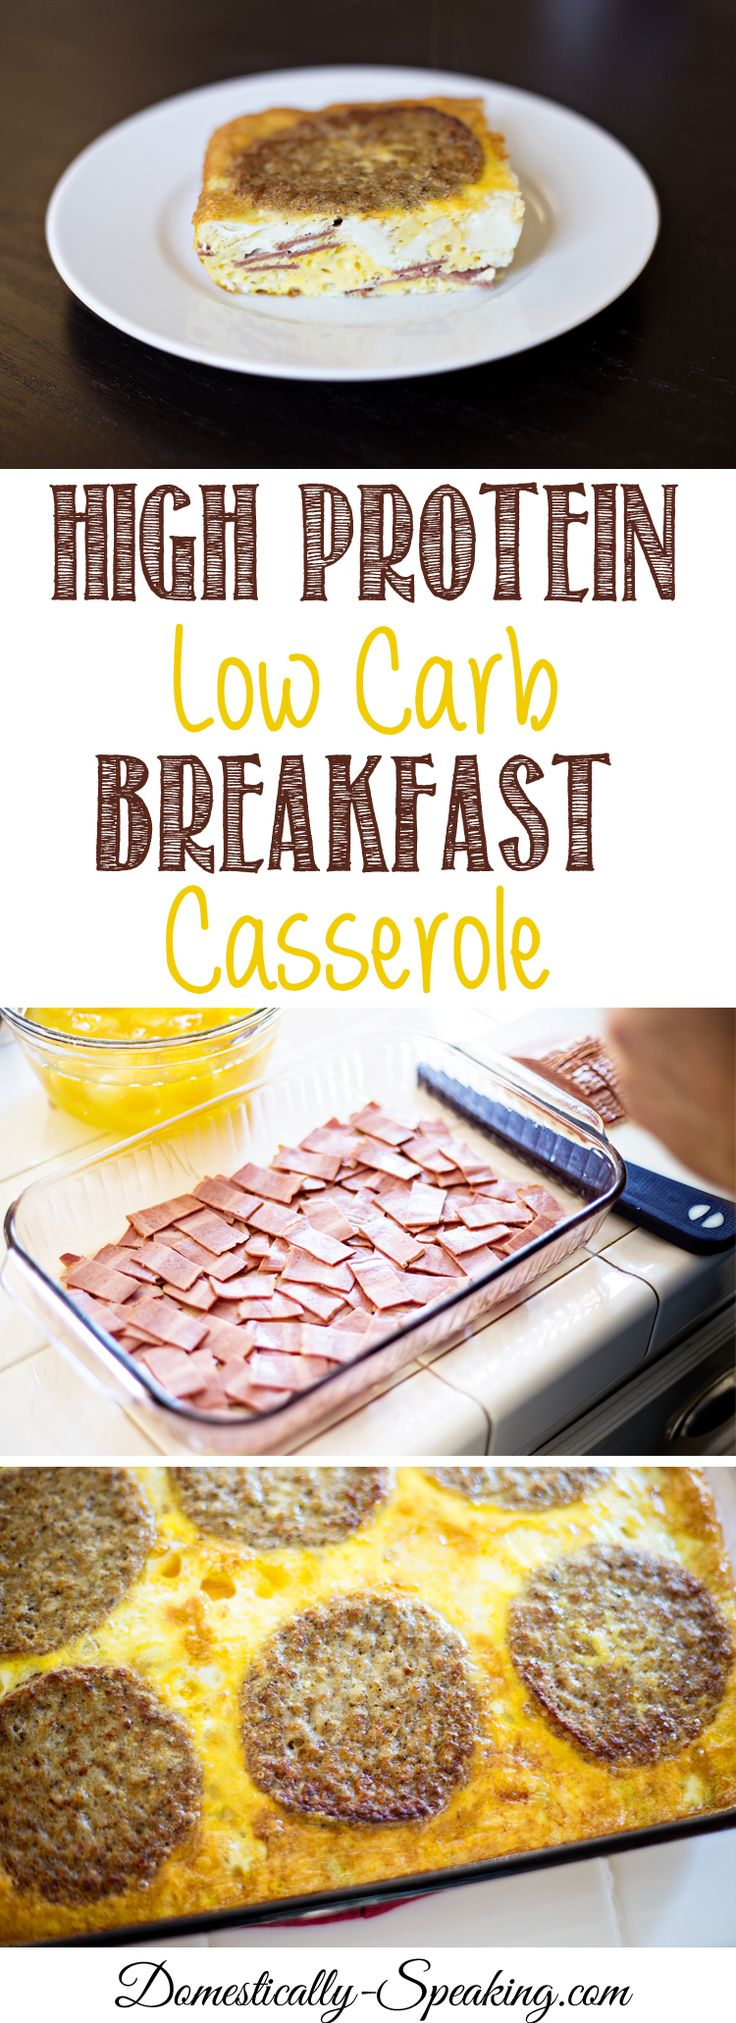 Low carb breakfast foods chart image